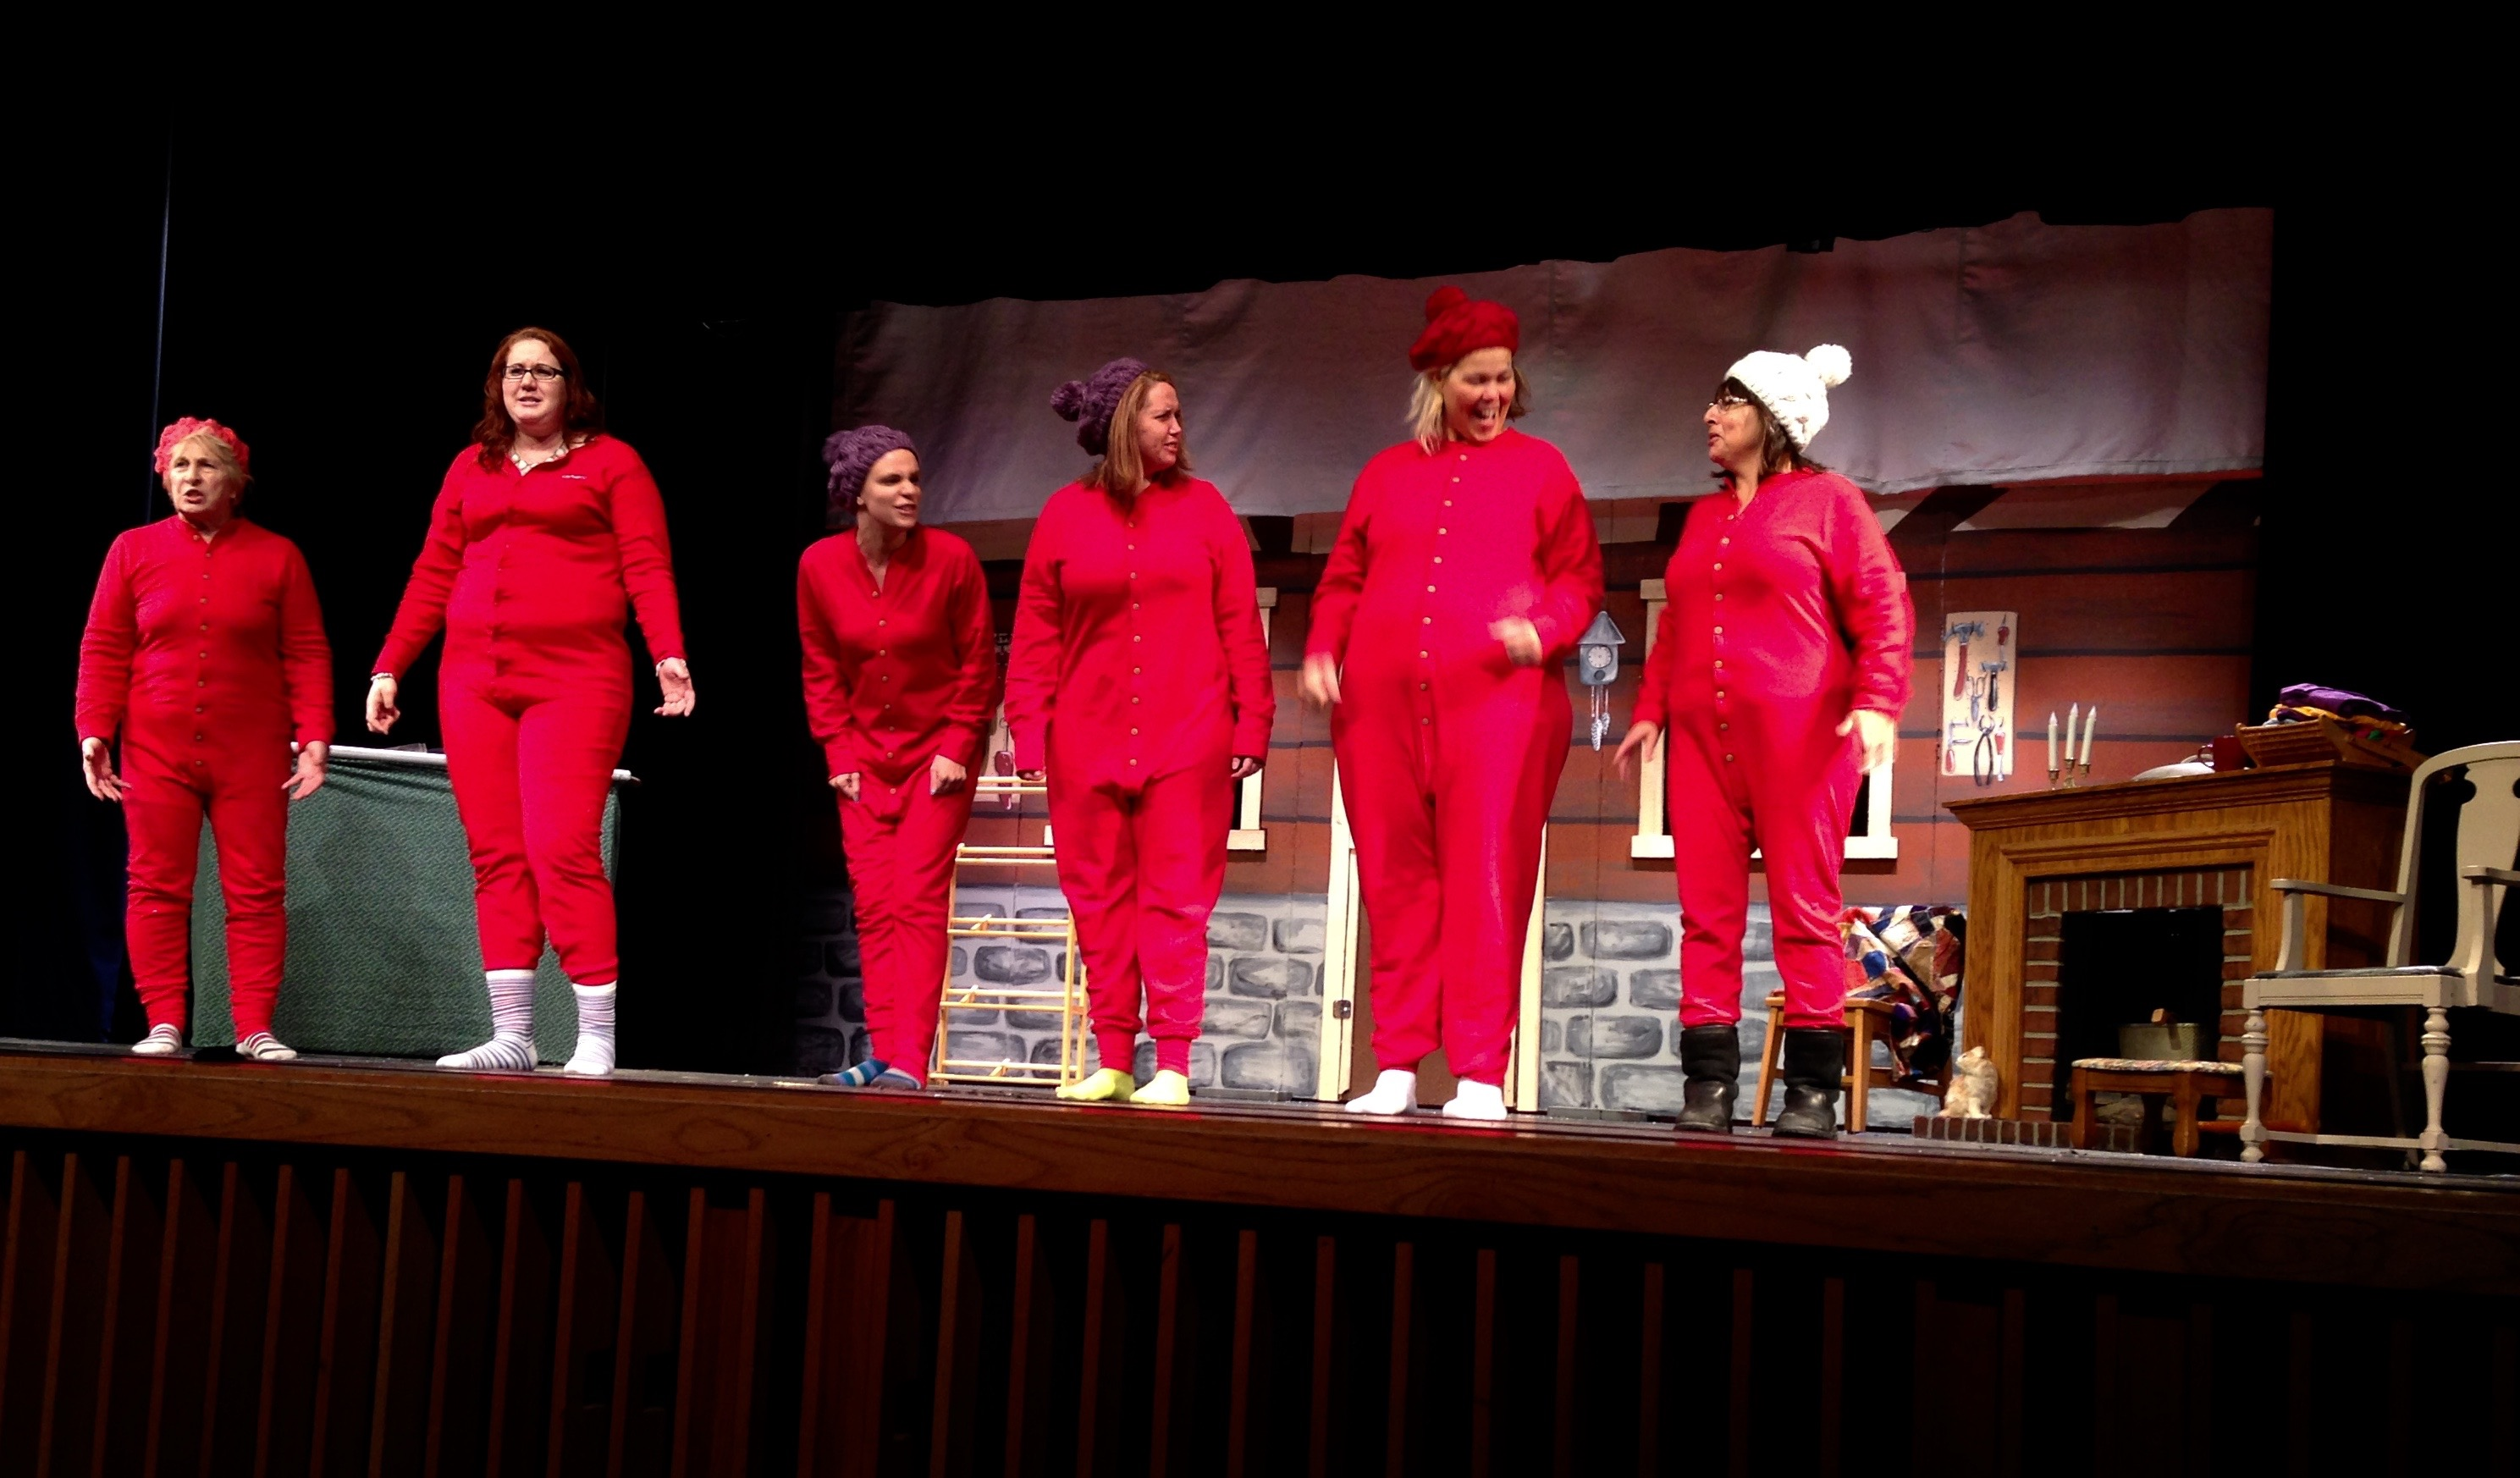 Petersburg acting group brings holiday musical to life